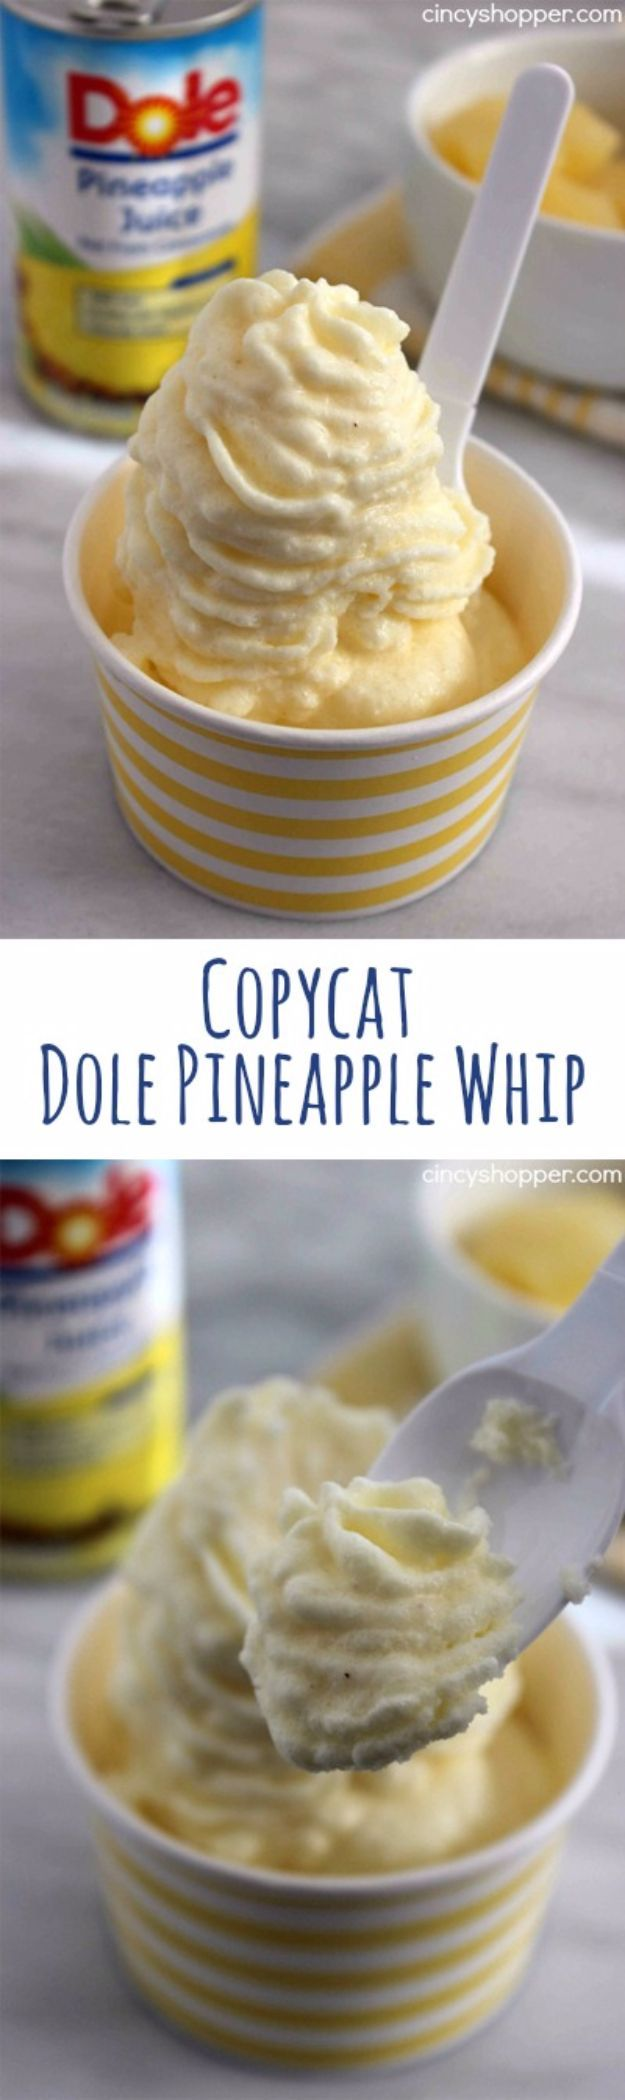 50 More Best Copycat Recipes From Top Restaurants - Copycat Dole Pineapple Whip - Awesome Recipe Knockoffs and Recipe Ideas from Chipotle Restaurant, Starbucks, Olive Garden, Cinabbon, Cracker Barrel, Taco Bell, Cheesecake Factory, KFC, Mc Donalds, Red Lo